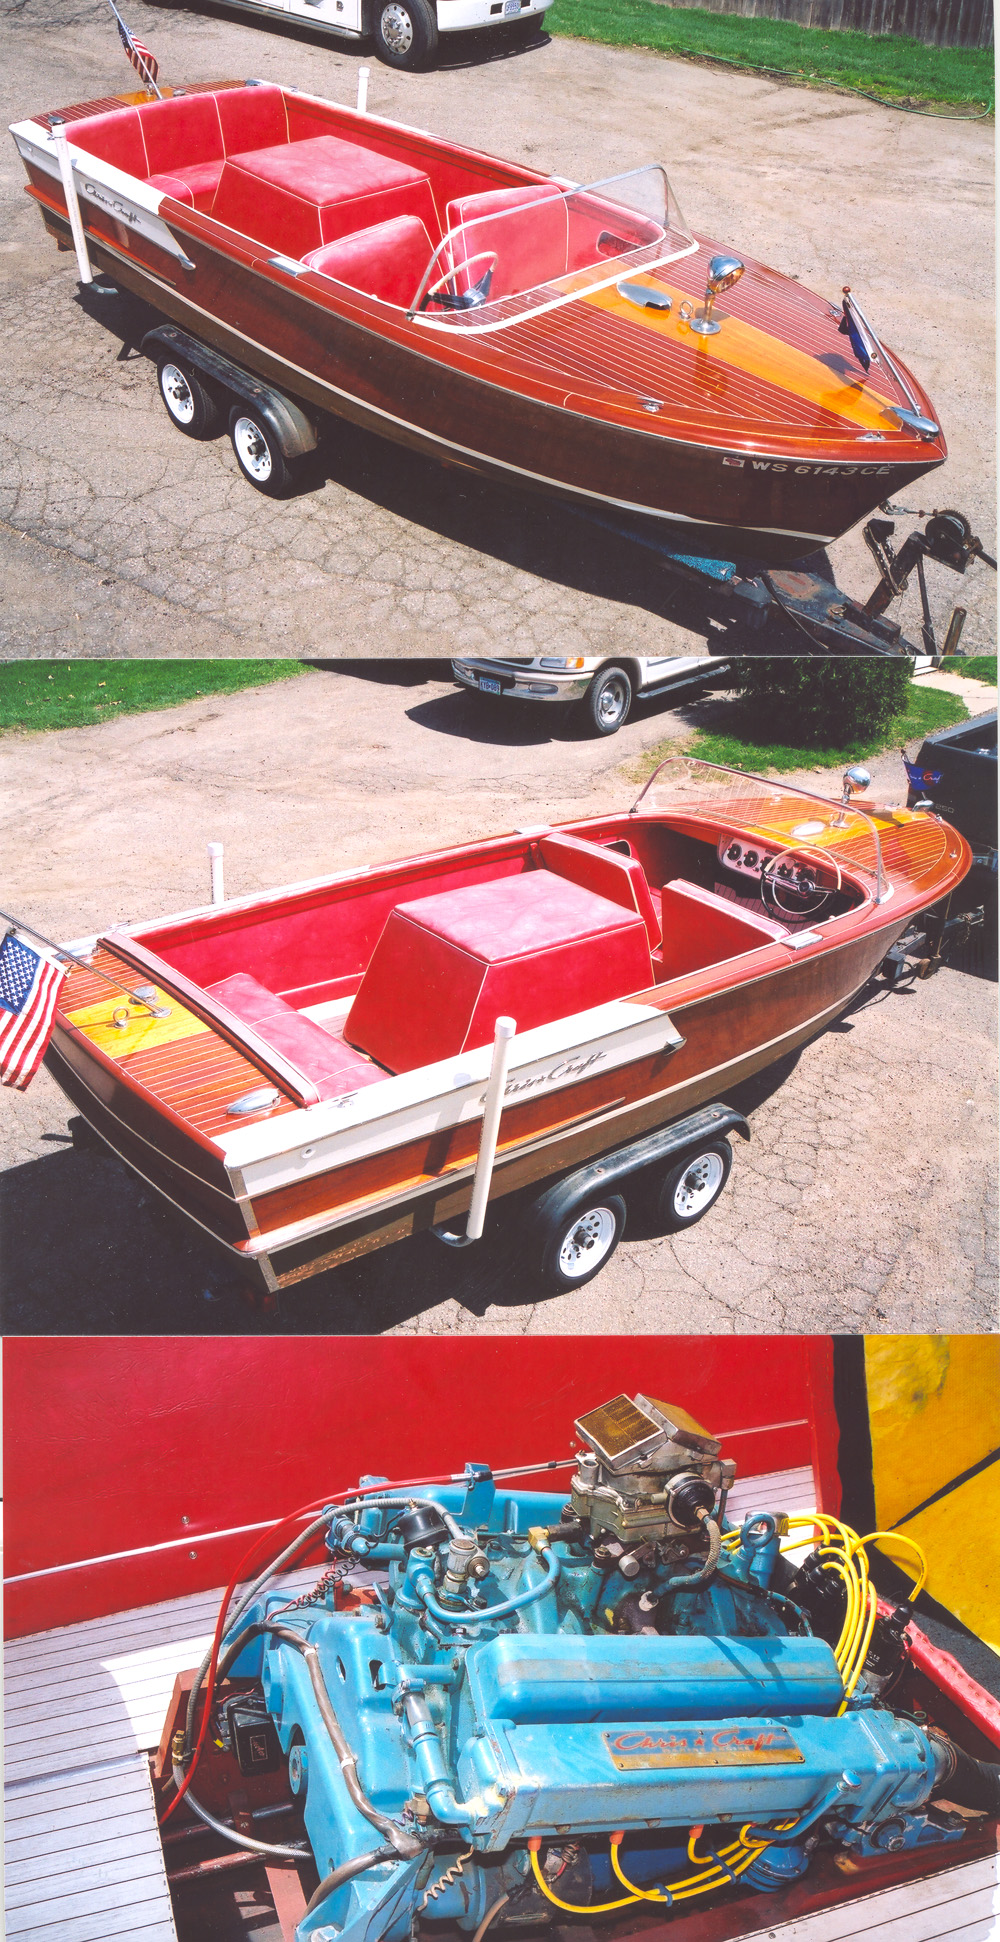 Classic boat with red interior